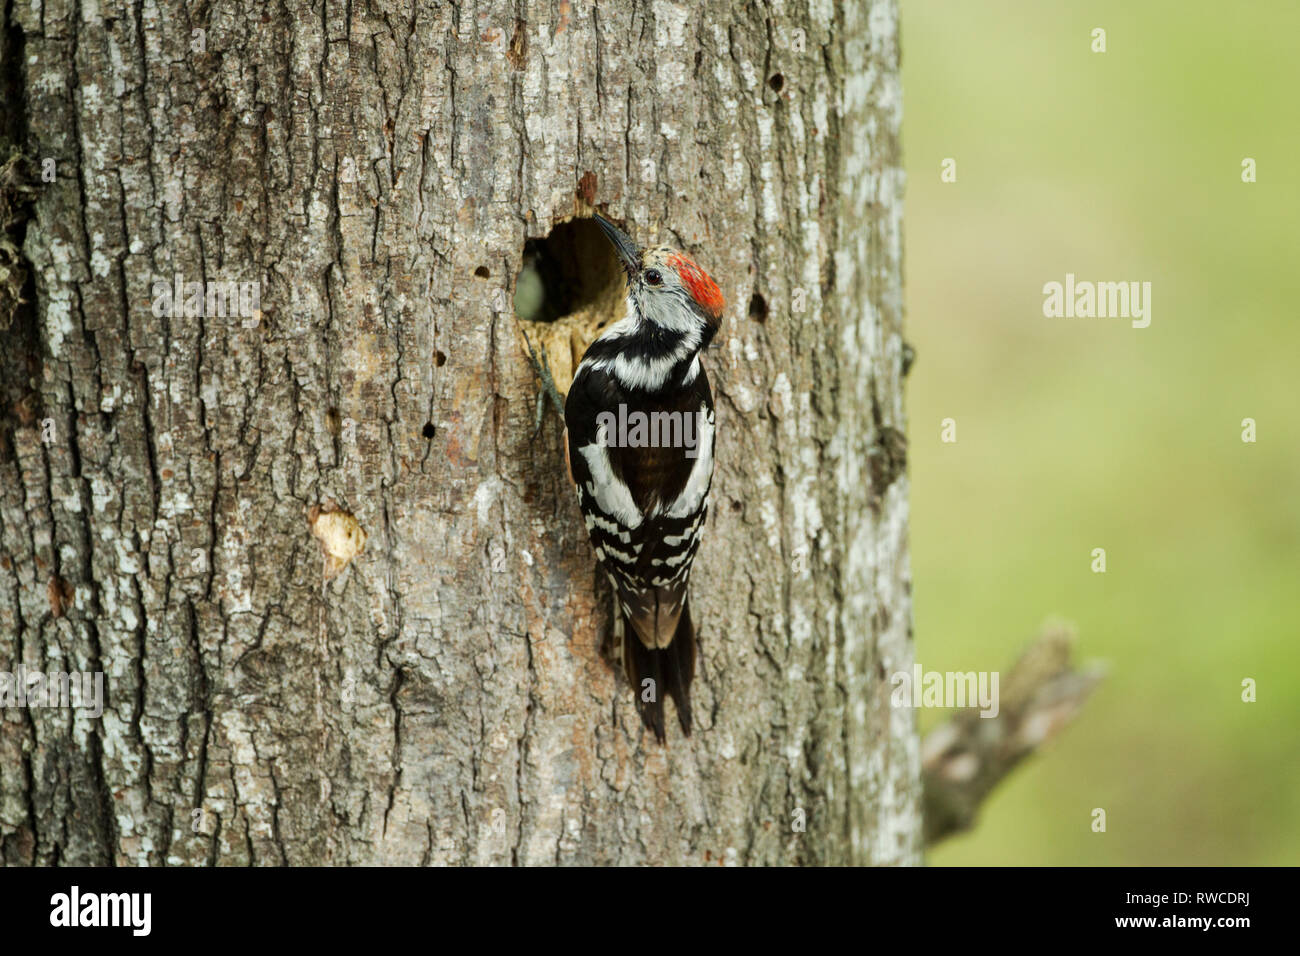 Middle spotted woodpecker, Latin name Dendrocoptes medius, at nest hole Stock Photo